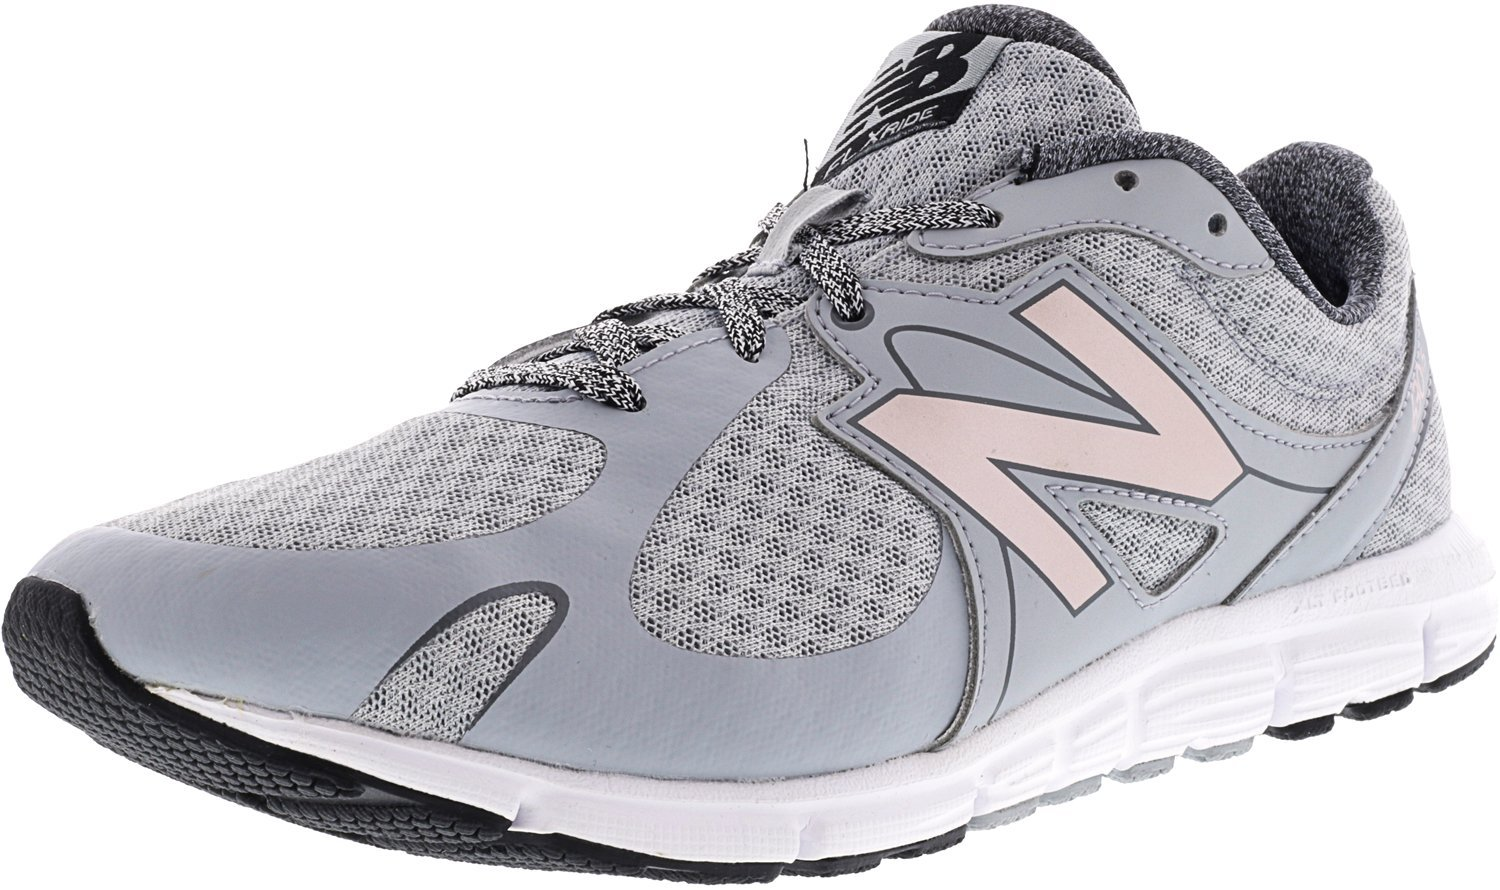 New Balance Women's 630v5 Flex Ride Running Shoe B01HGLHZ76 10 B(M) US|Silver Mink/Rose